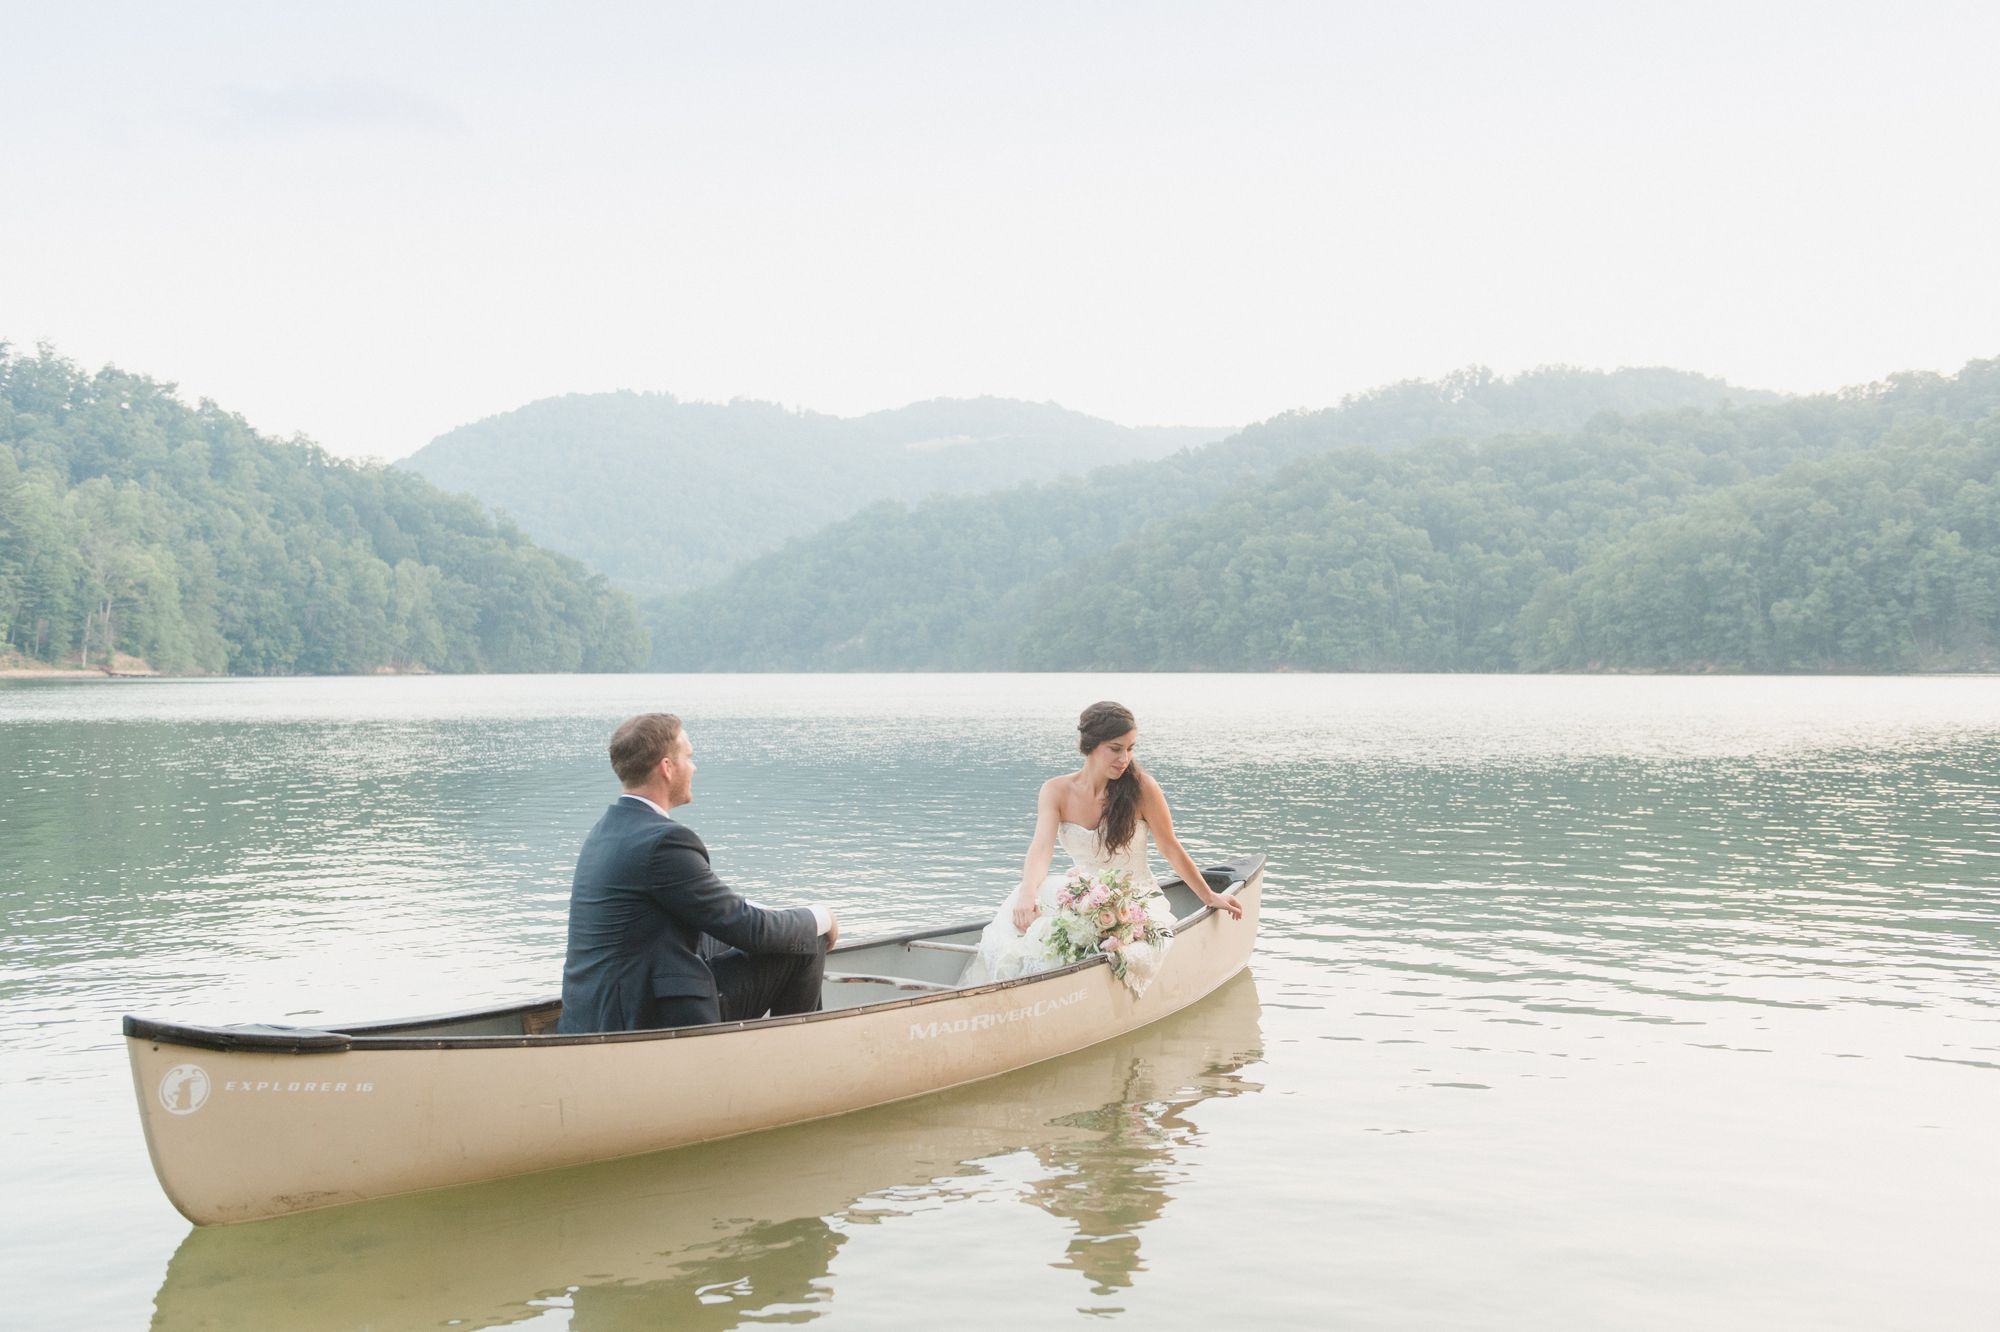 morning-after-wedding-session-in-canoe 7